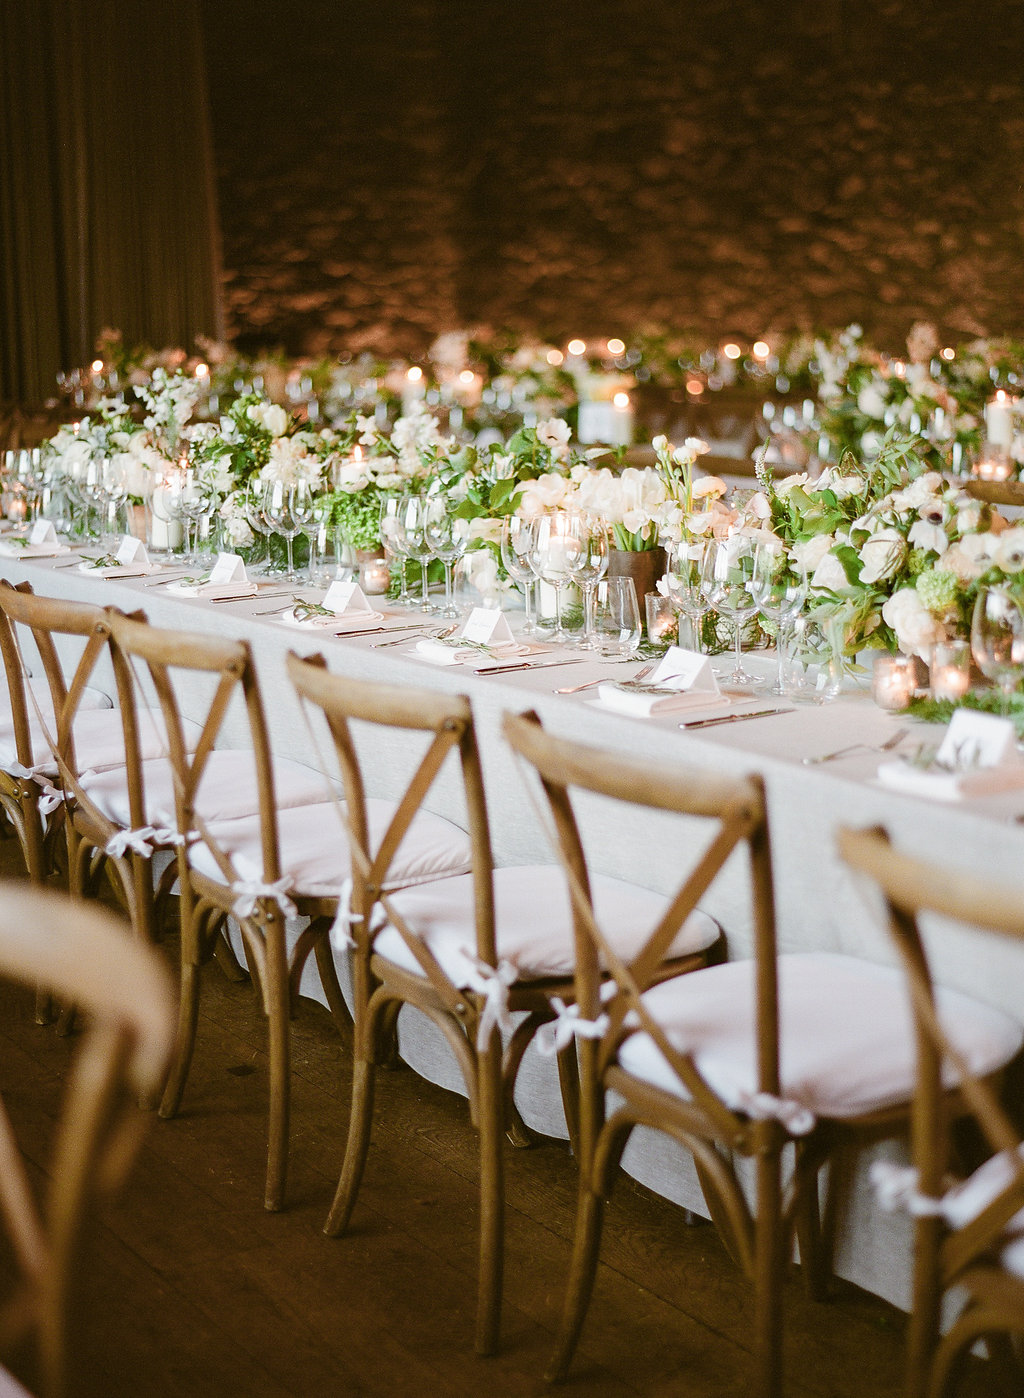 Catering: Marlow Events | Venue: The Castle | Photo: Heather Waraksa | Chairs: Rent Patina | Linen: Nuage | Tabletop Rentals: Eleven36 | Cocktail: Jesse Blades and Plant People | Stationery: Venamour | Flowers: Saiupa | Music: DJ Inbetween